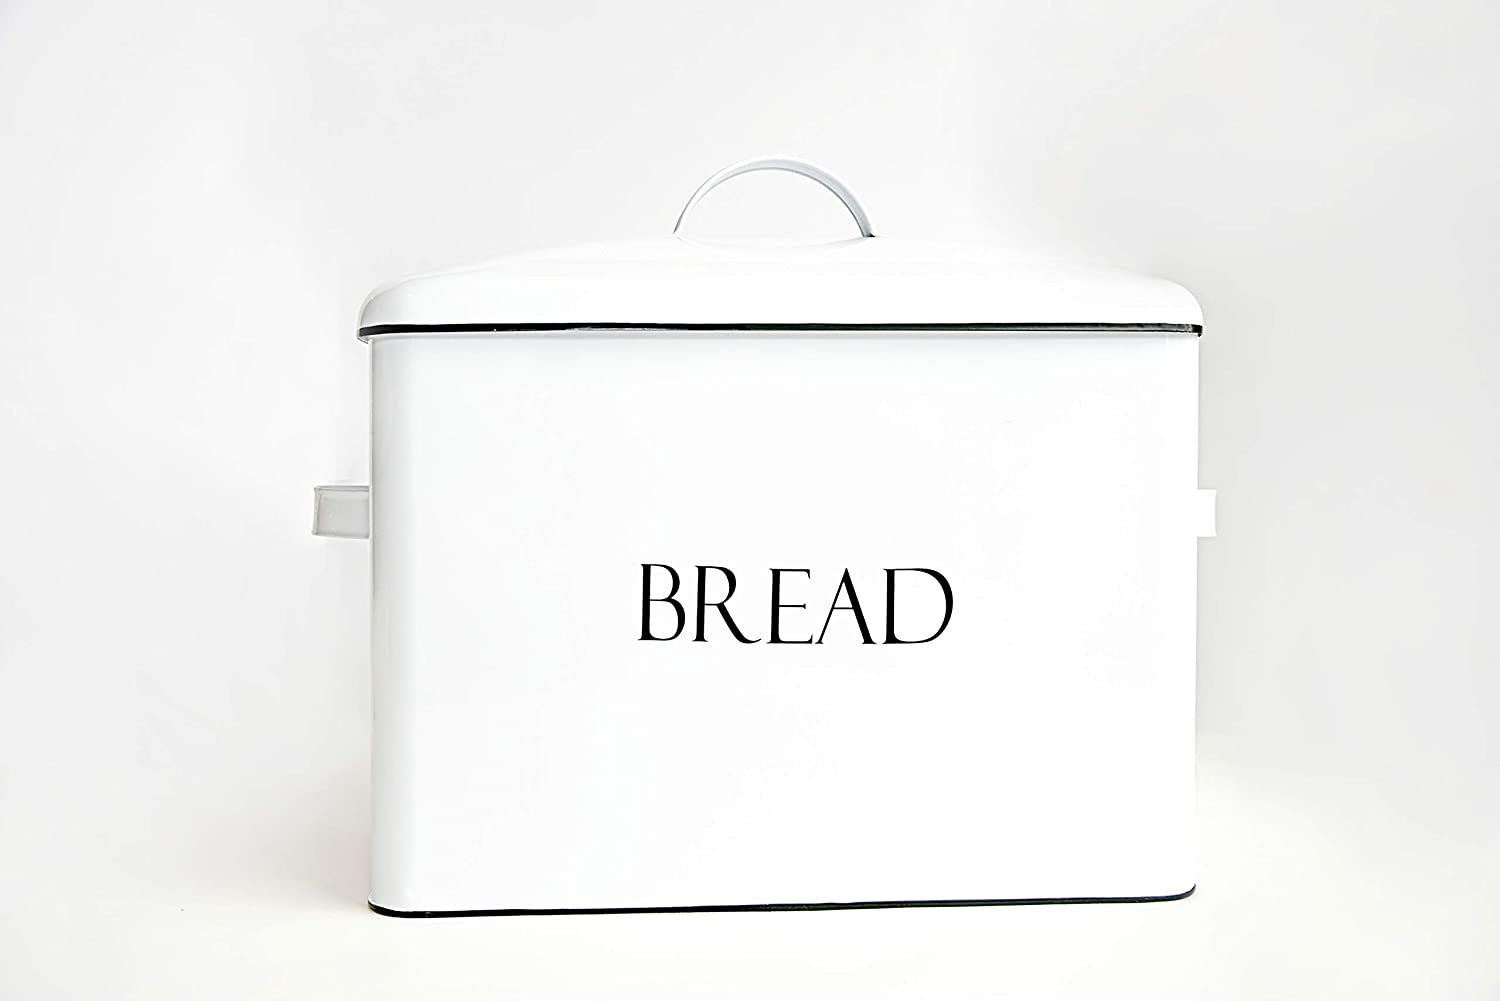 Vintage Metal Bread Bin - Countertop Space-Saving, Extra Large, High Capacity Bread Storage Box for your Kitchen - Holds 3 Loaves 13